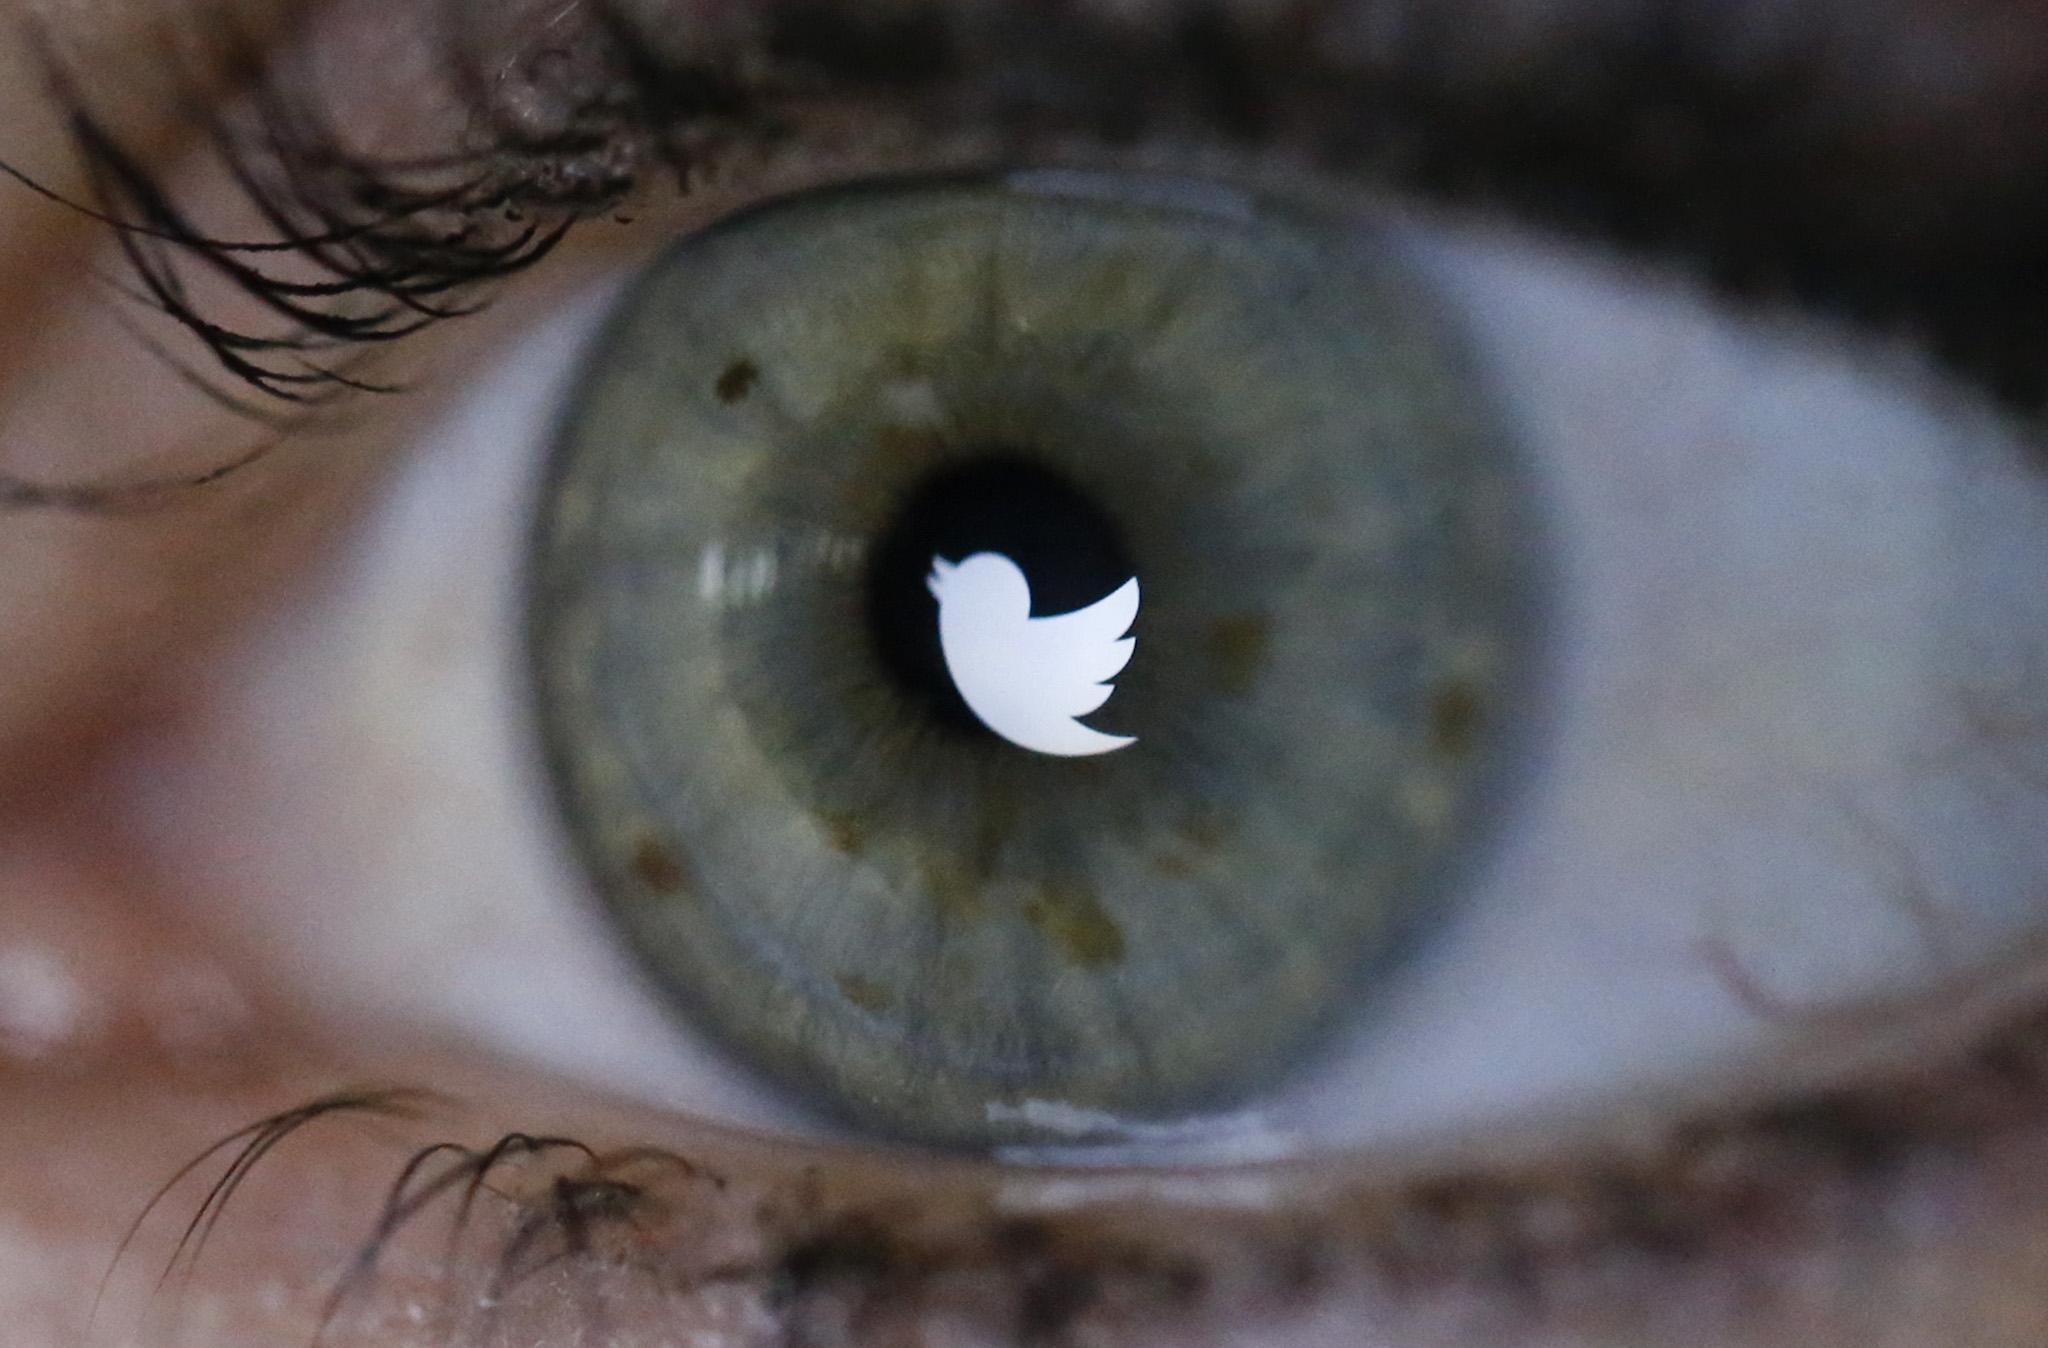 Twitter Bug Made People's Private Tweets Public, Company Admits